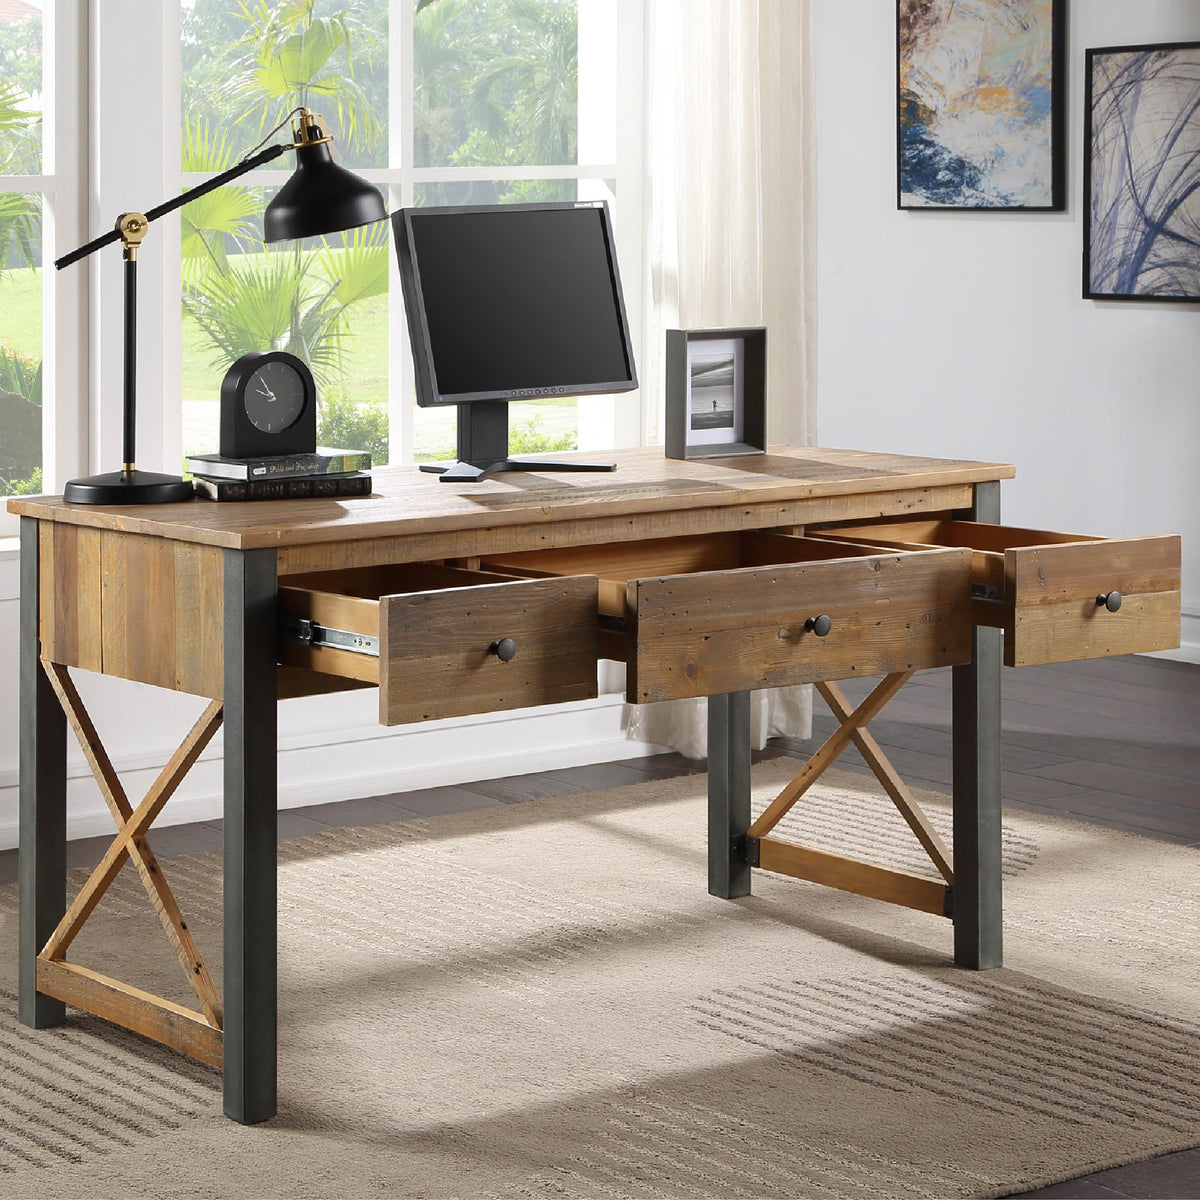 Open drawer view of  Urban Elegance Reclaimed Wood home Office Desk